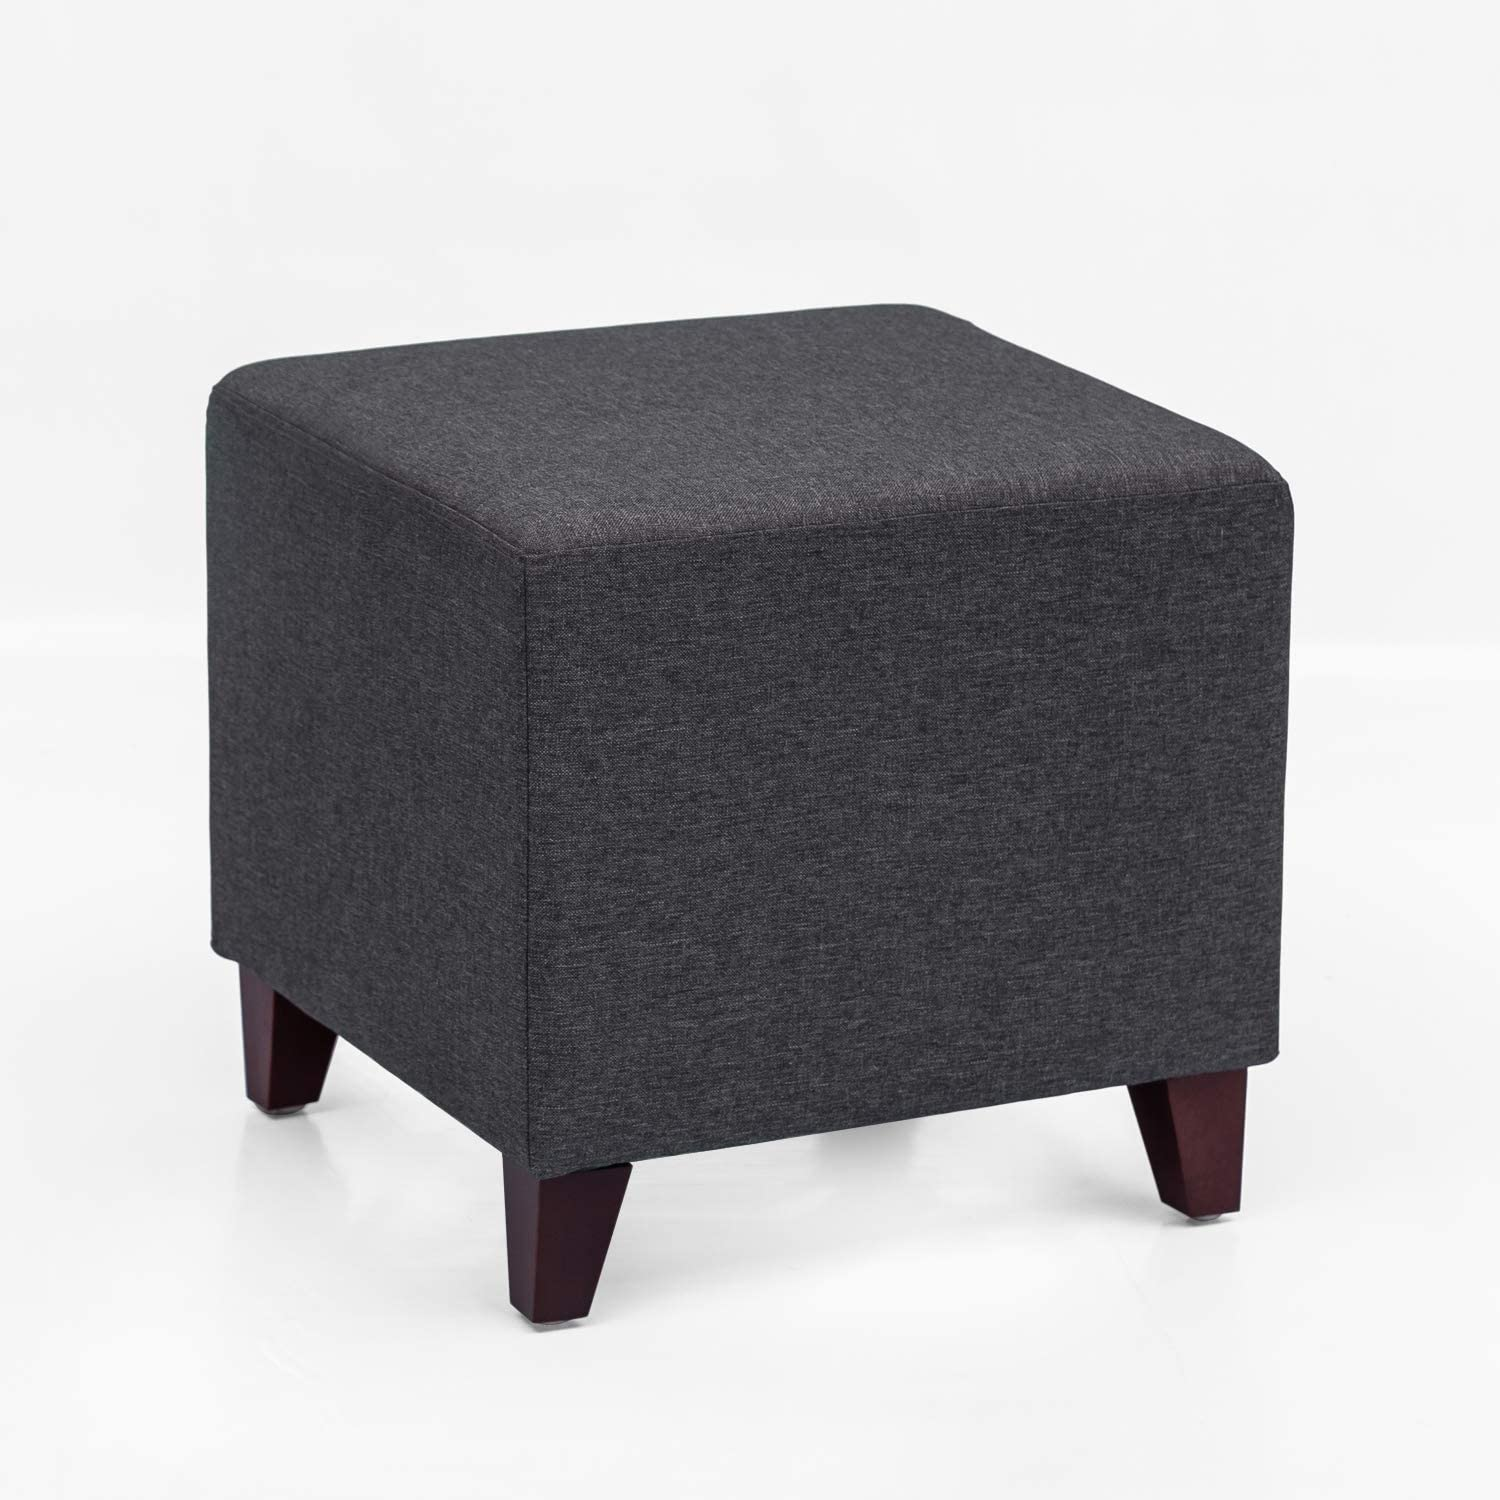 Homebeez Square Ottoman Footrest Stool, Small Fabric Cube Bench Seat with Wood Legs (Dark Grey)